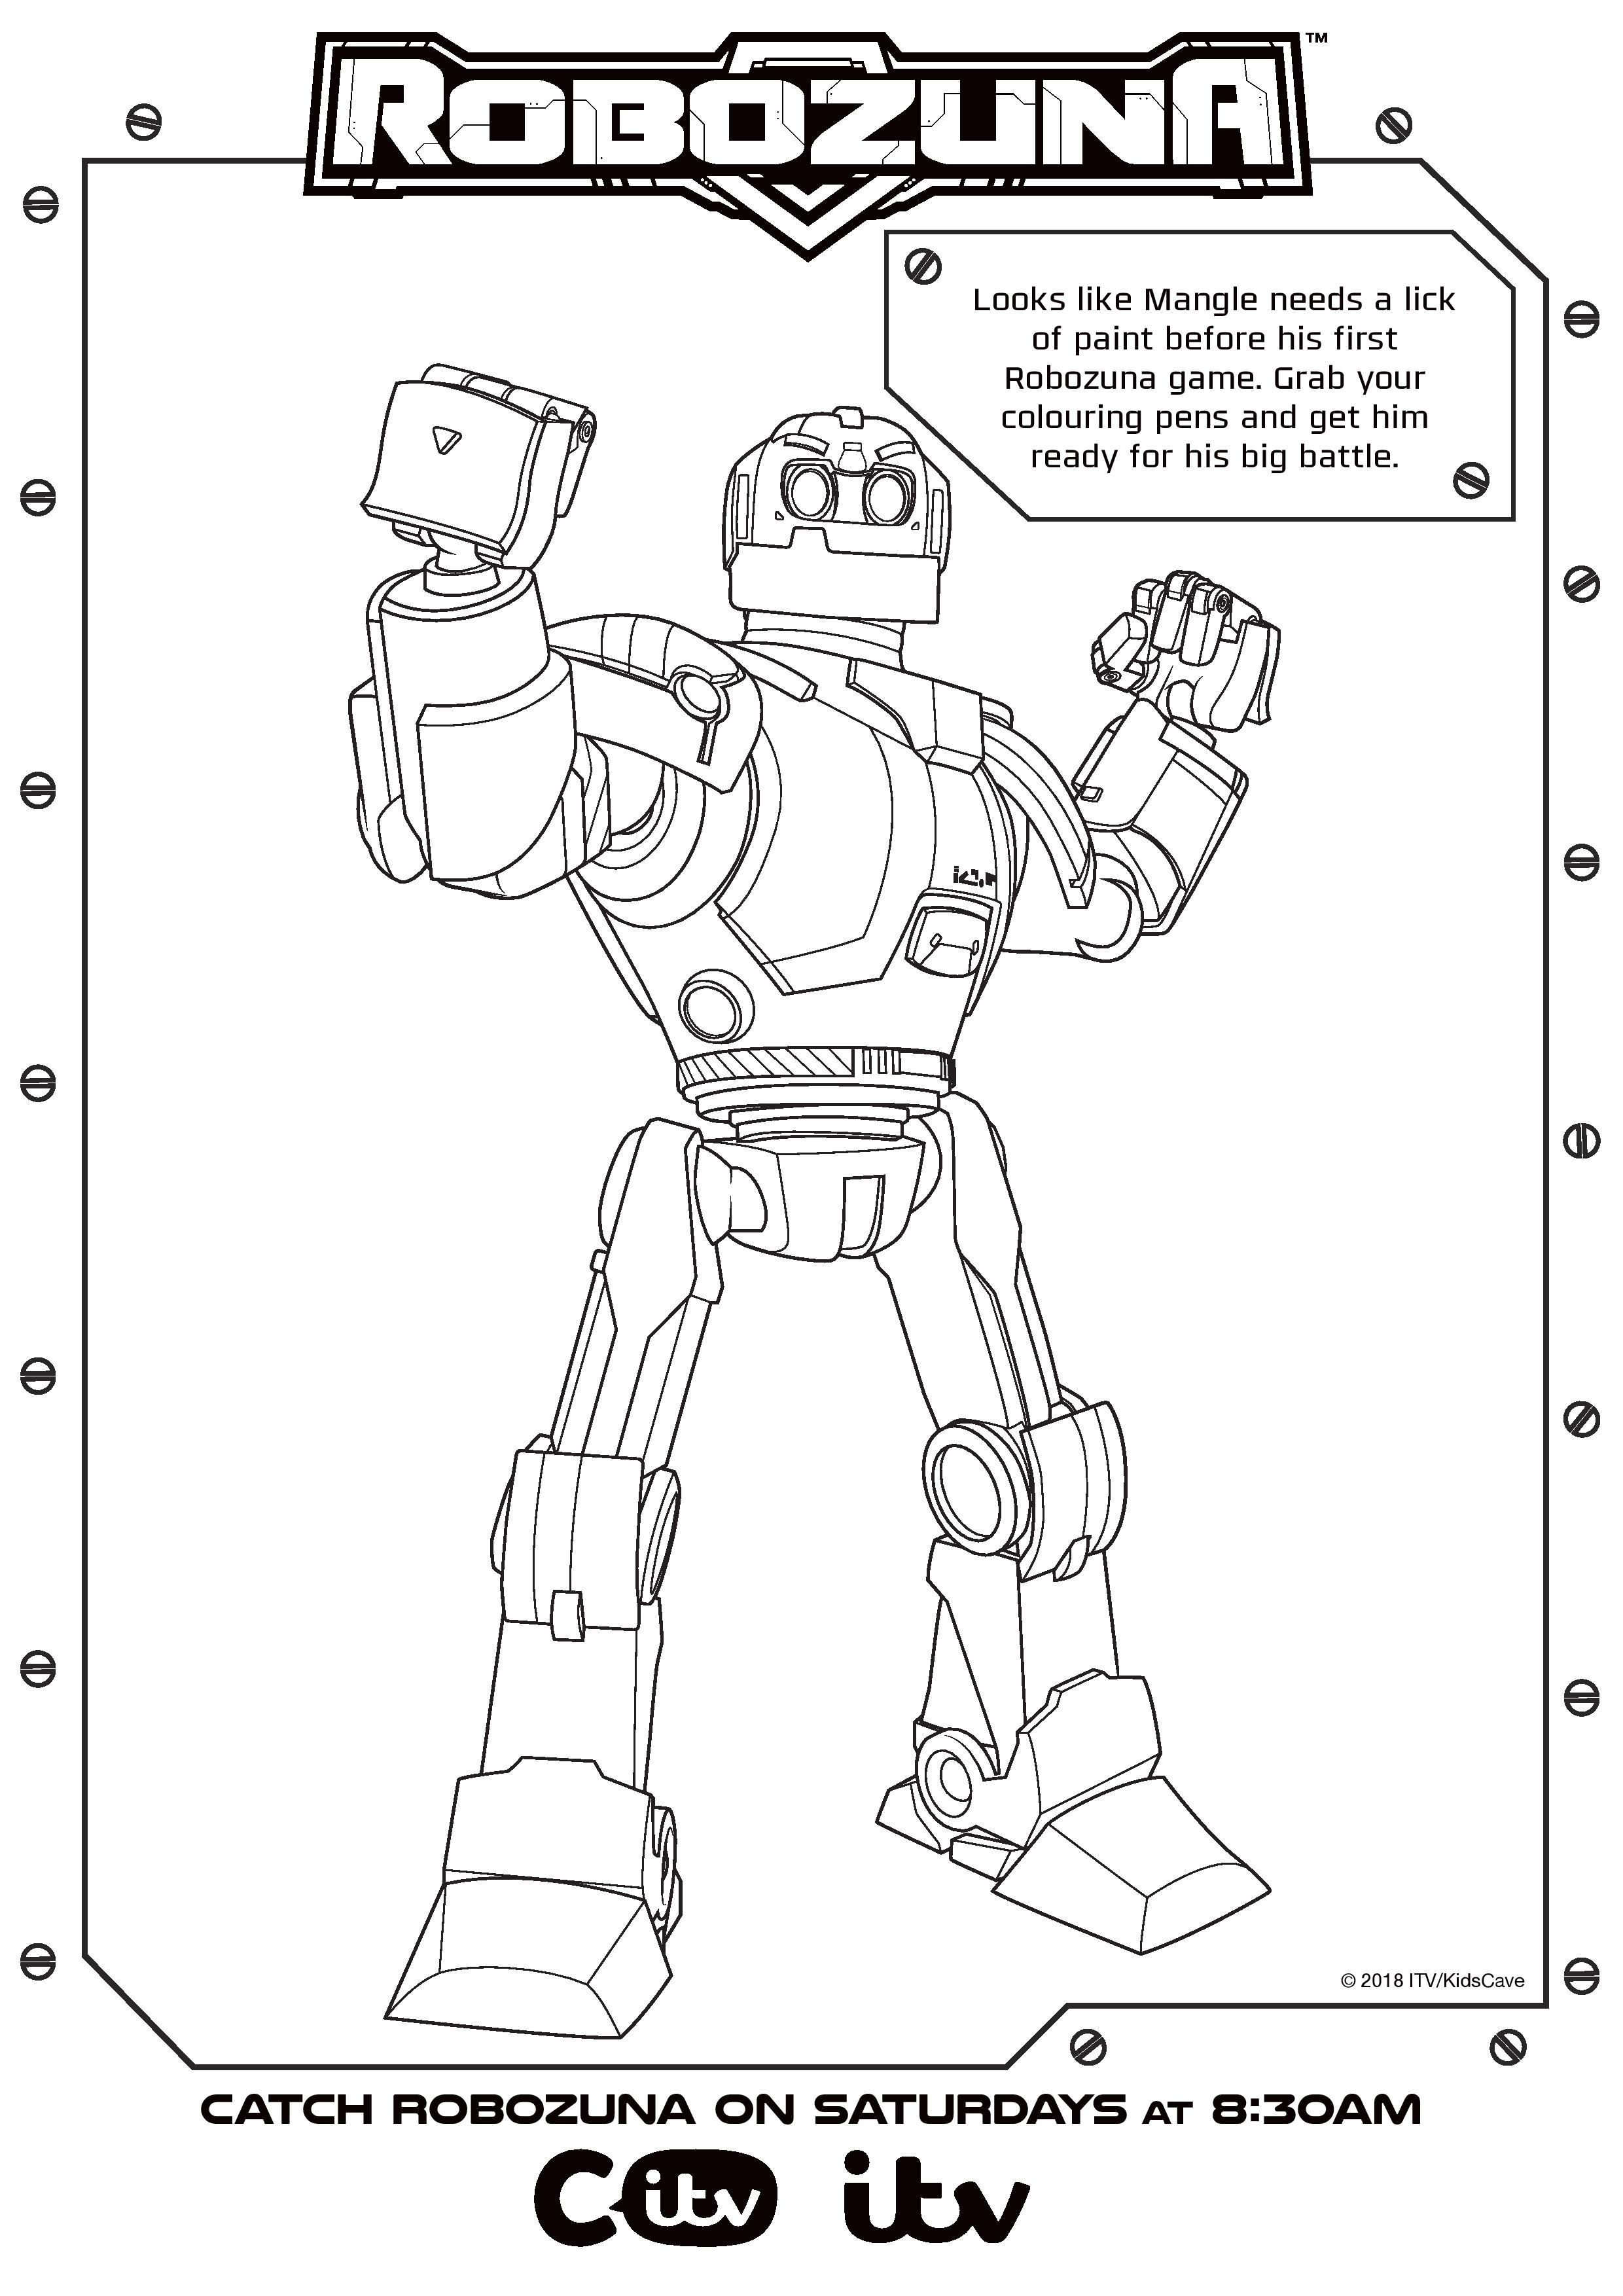 Robozuna Colouring Sheet_01 (1)-page-001 - In The Playroom